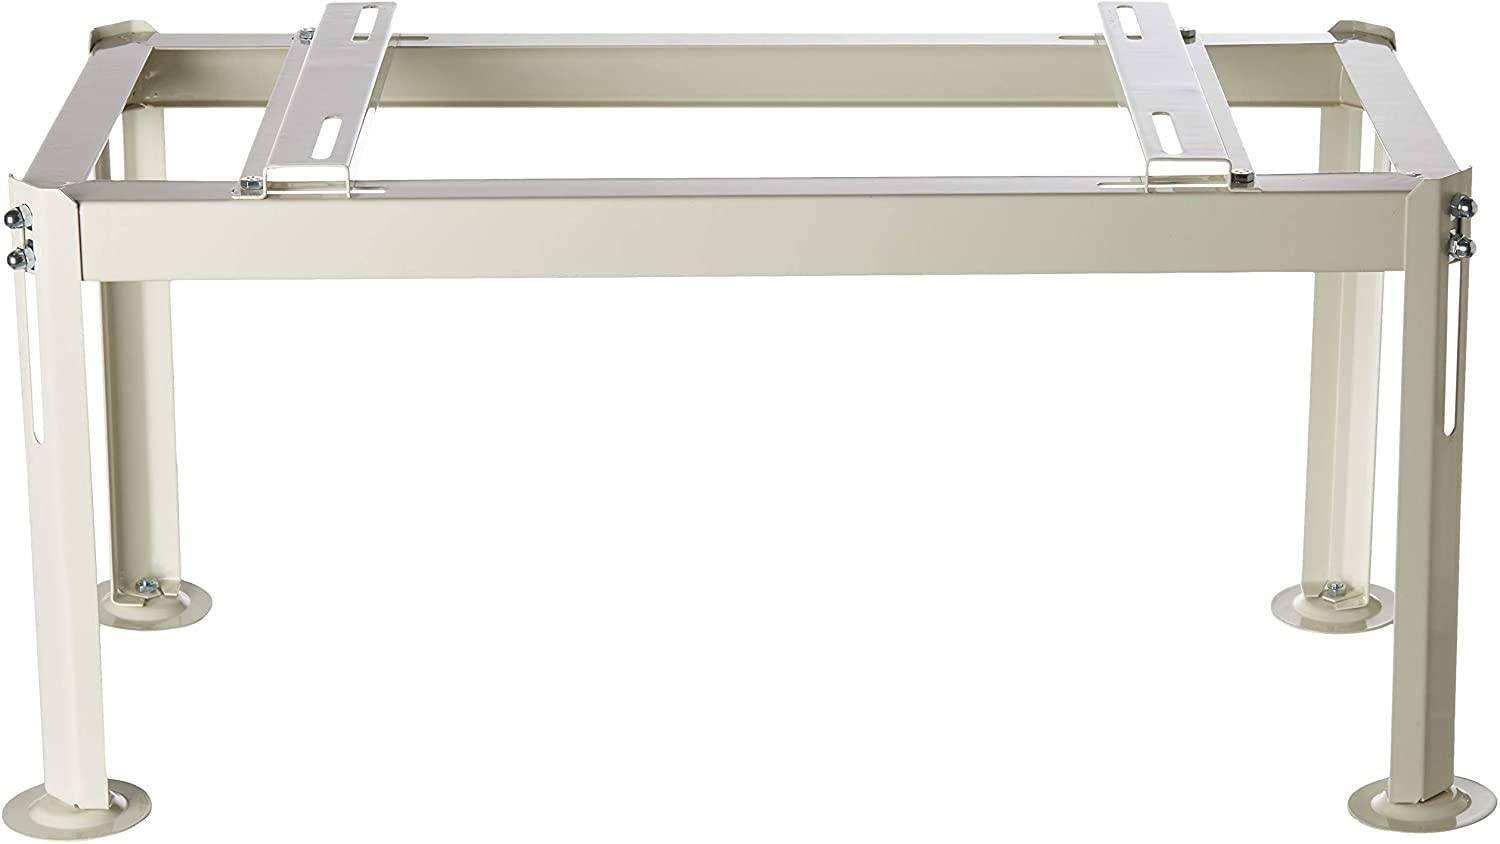 Senville GS-380 Heavy Duty Ground Stand for Ductless Mini Split AC Heat Pump, Off White